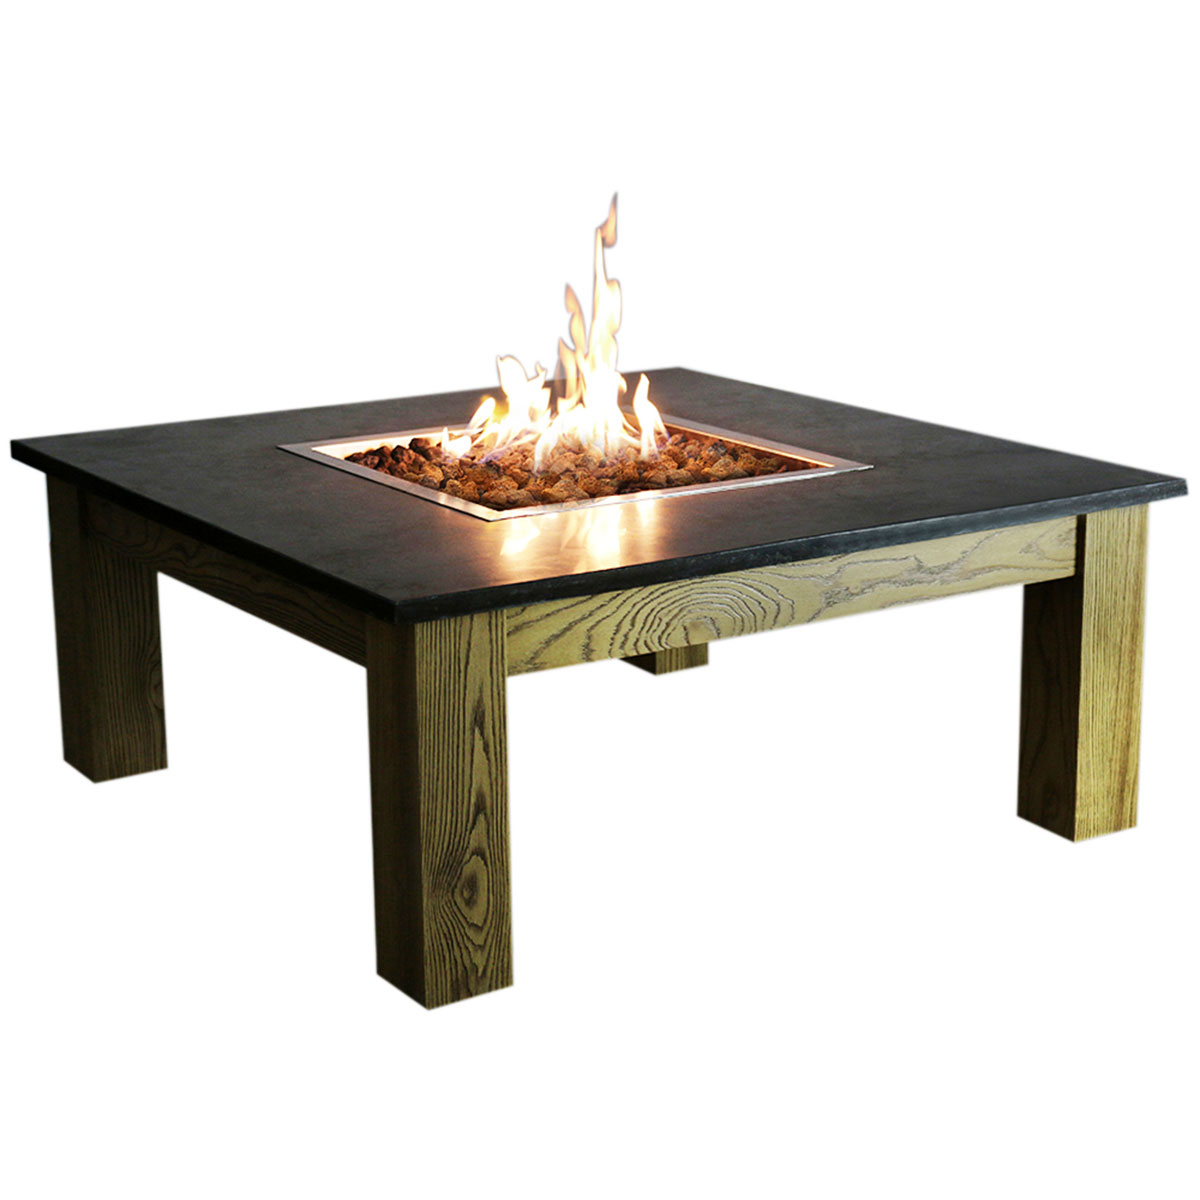 Picture of: Elementi Amish Coffee Table Fire Pit